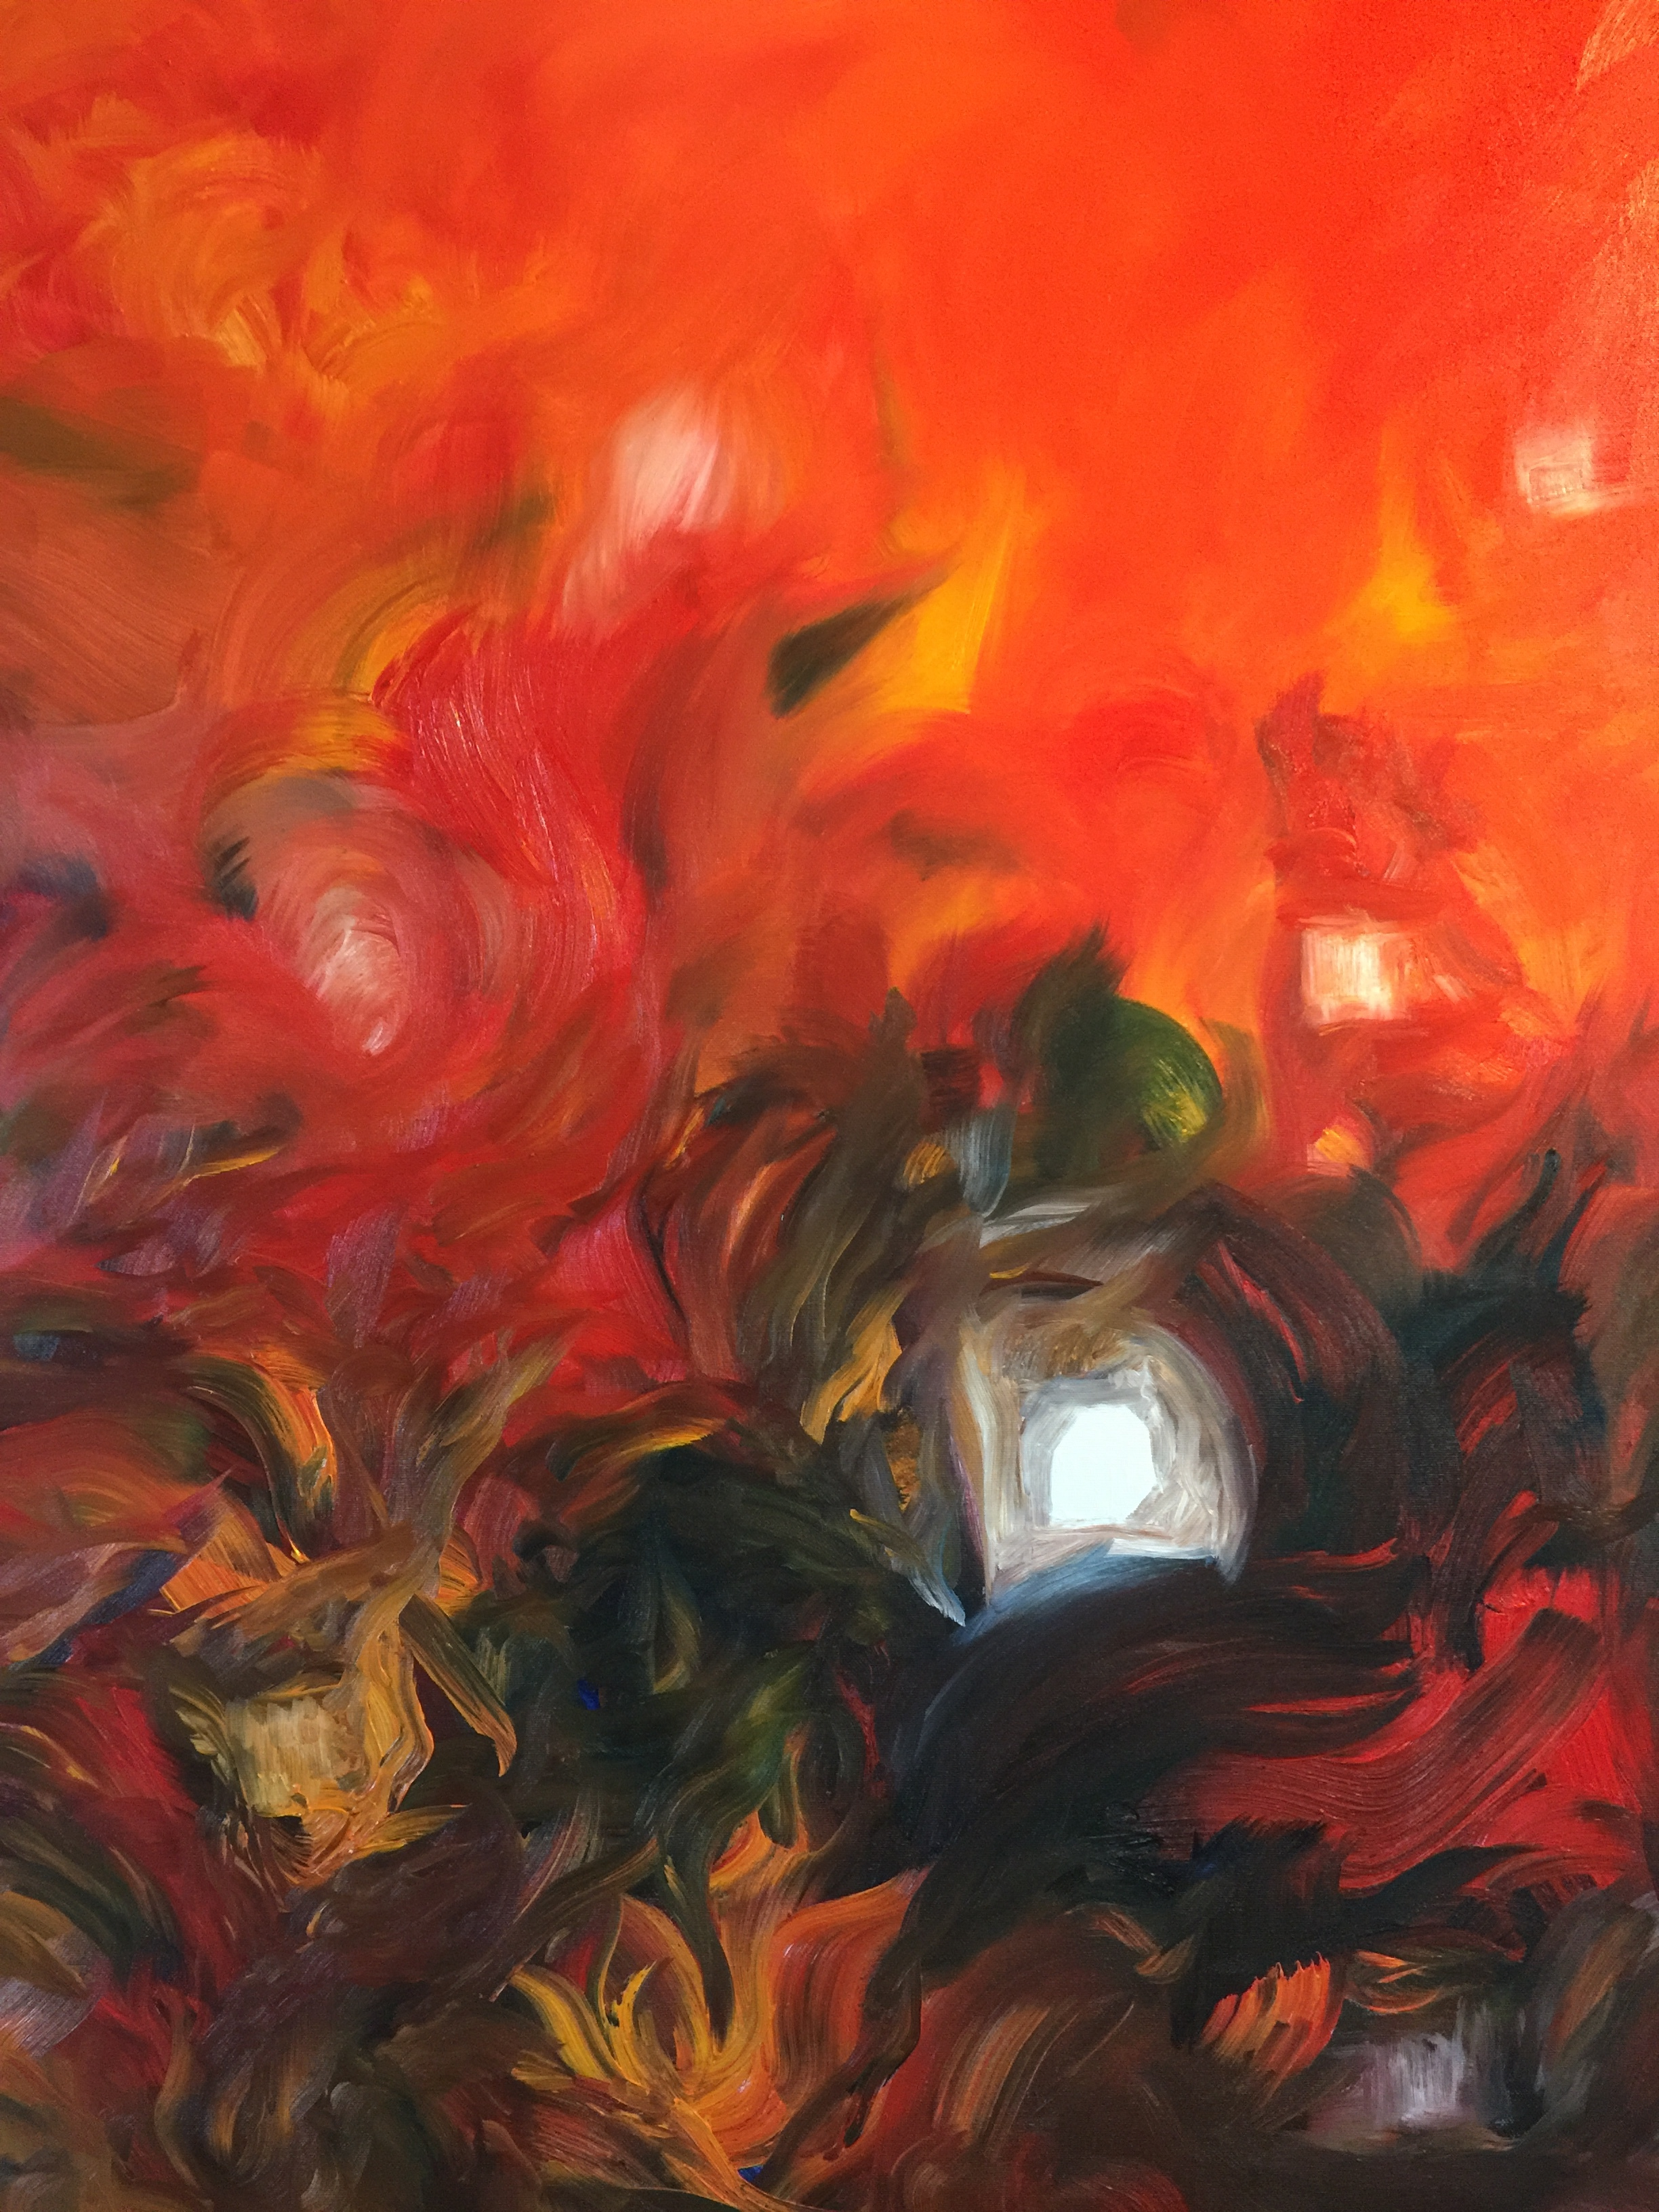 Anthropocene's burning? « On fire », Oil on canvas, « home » series, 30F (92x73cm), Renaud Gaultier 2019.